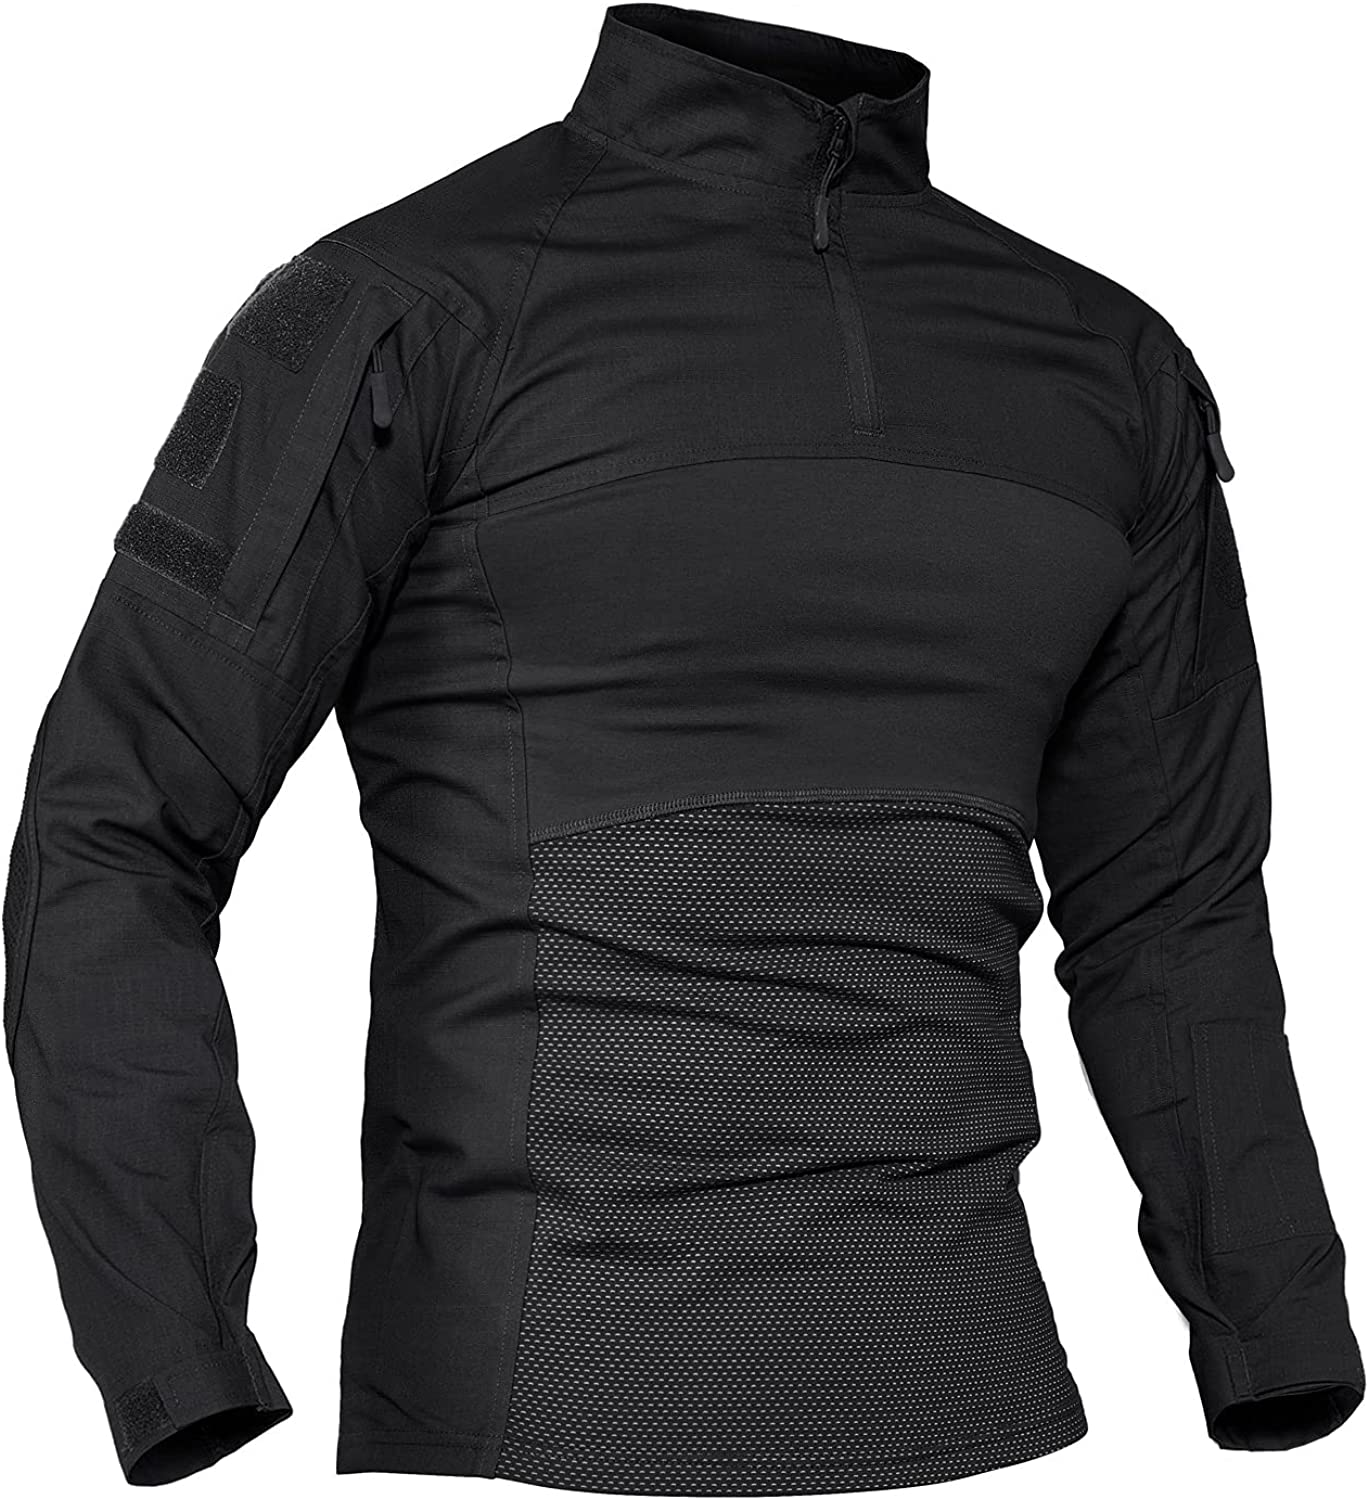 TACVASEN Men's Tactical Shirt Limited List price time trial price 1 4 Assault Military Long Zip Top